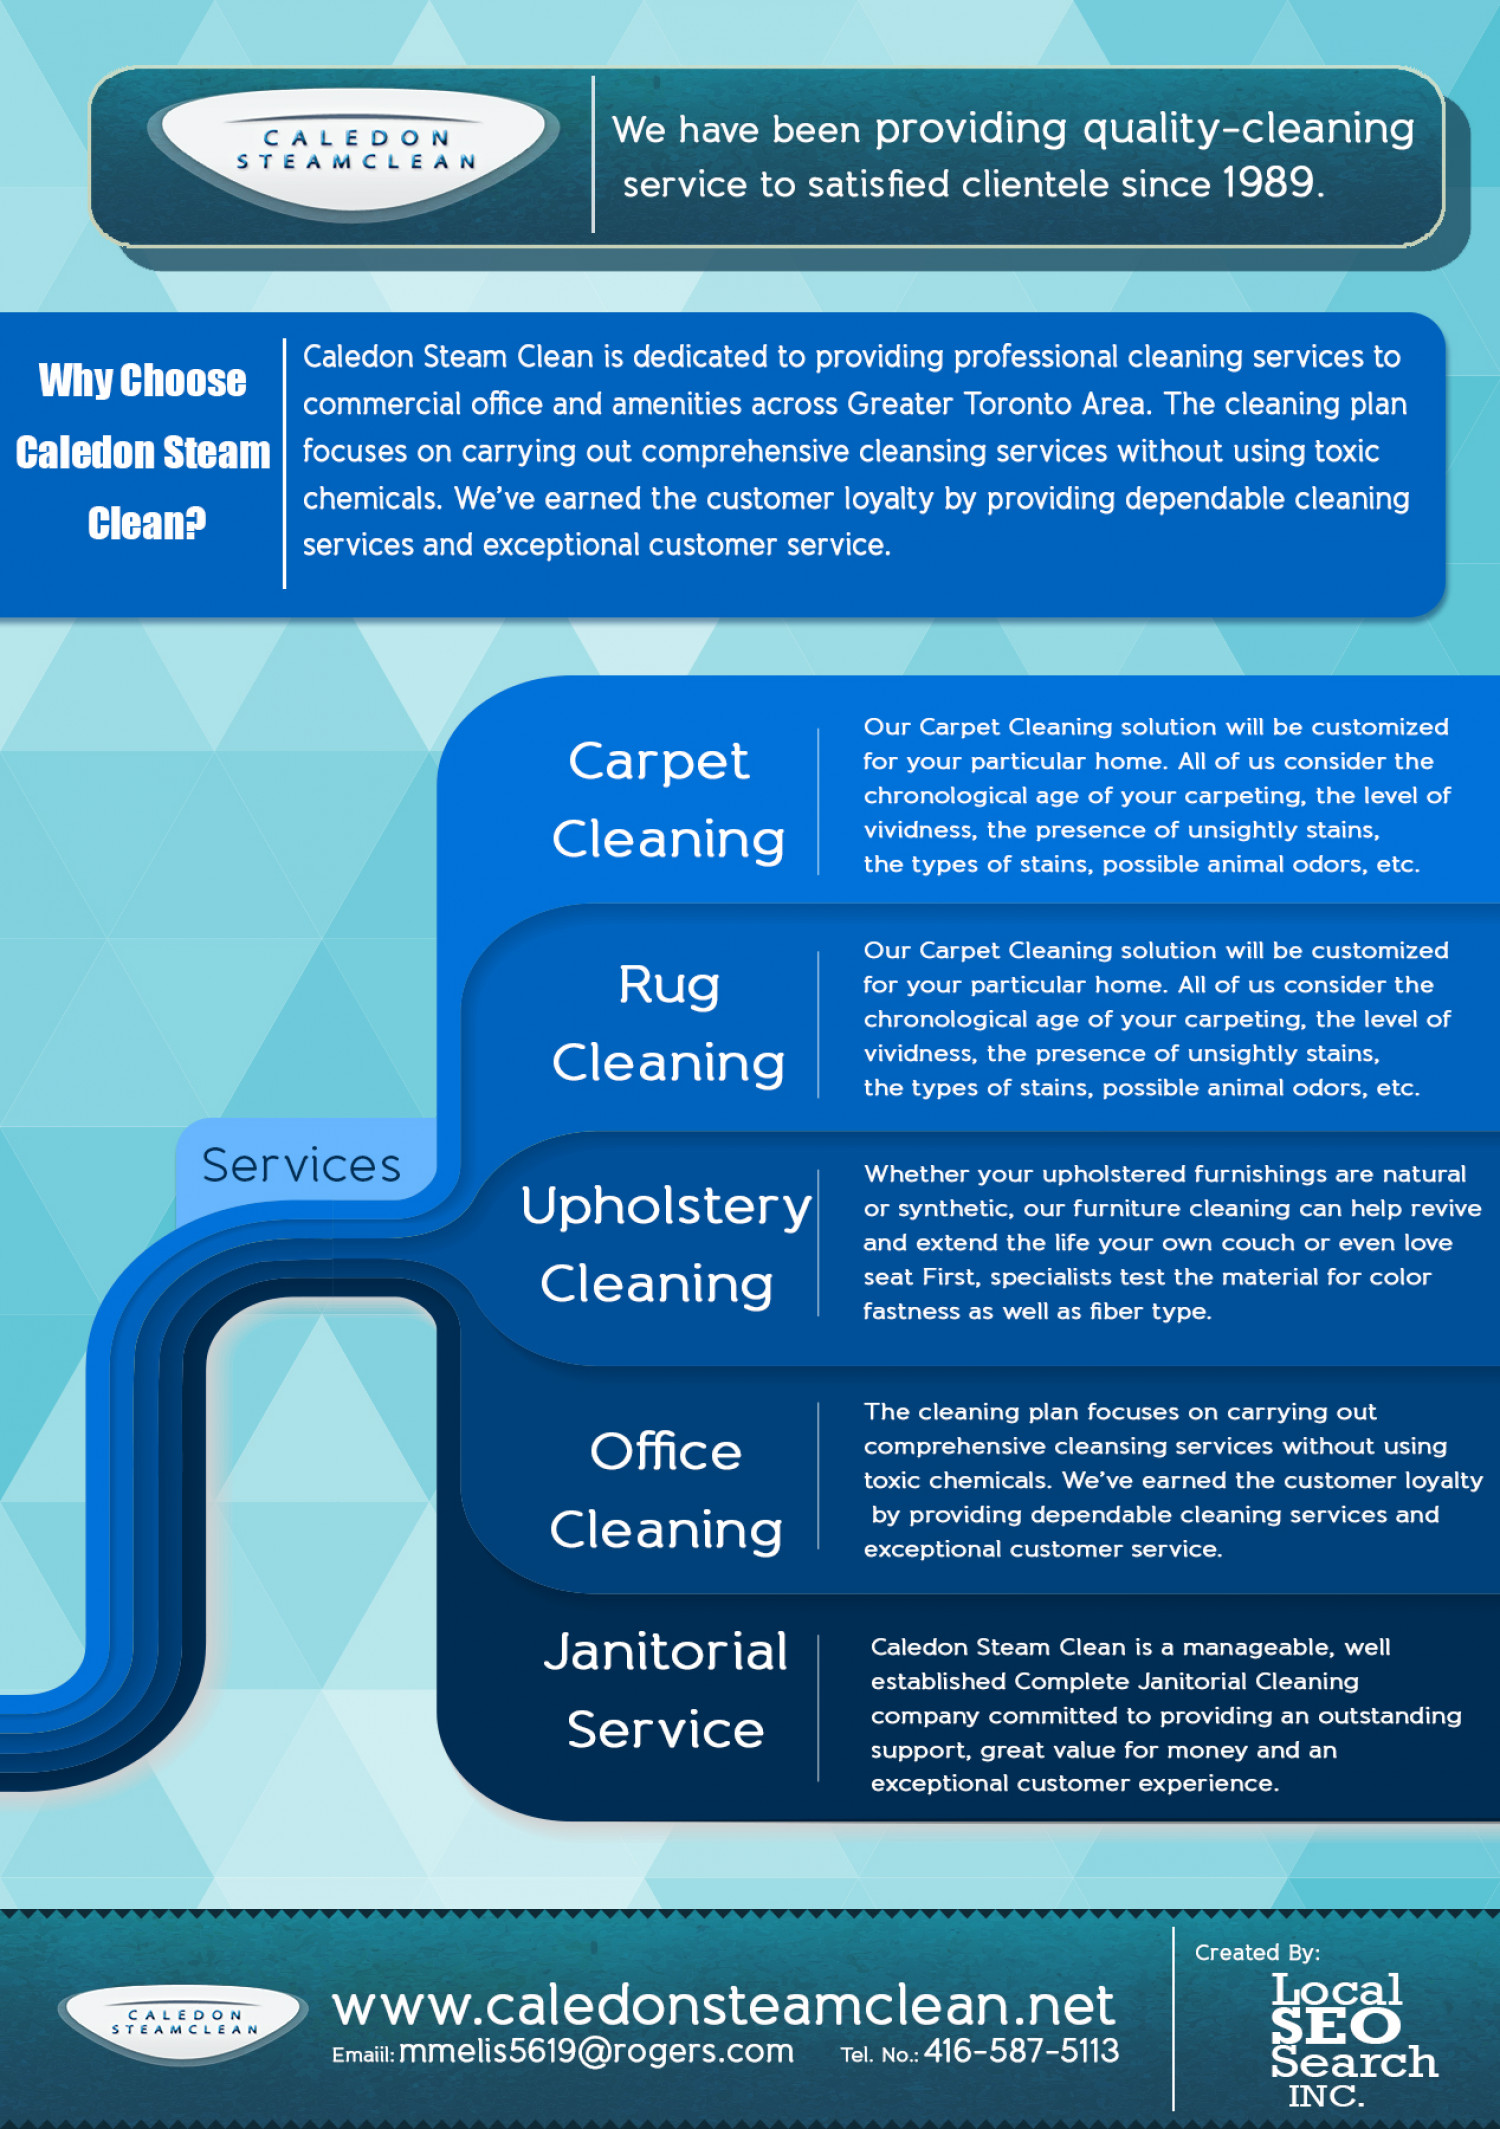 caledon-steam-clean-infographic-office-c